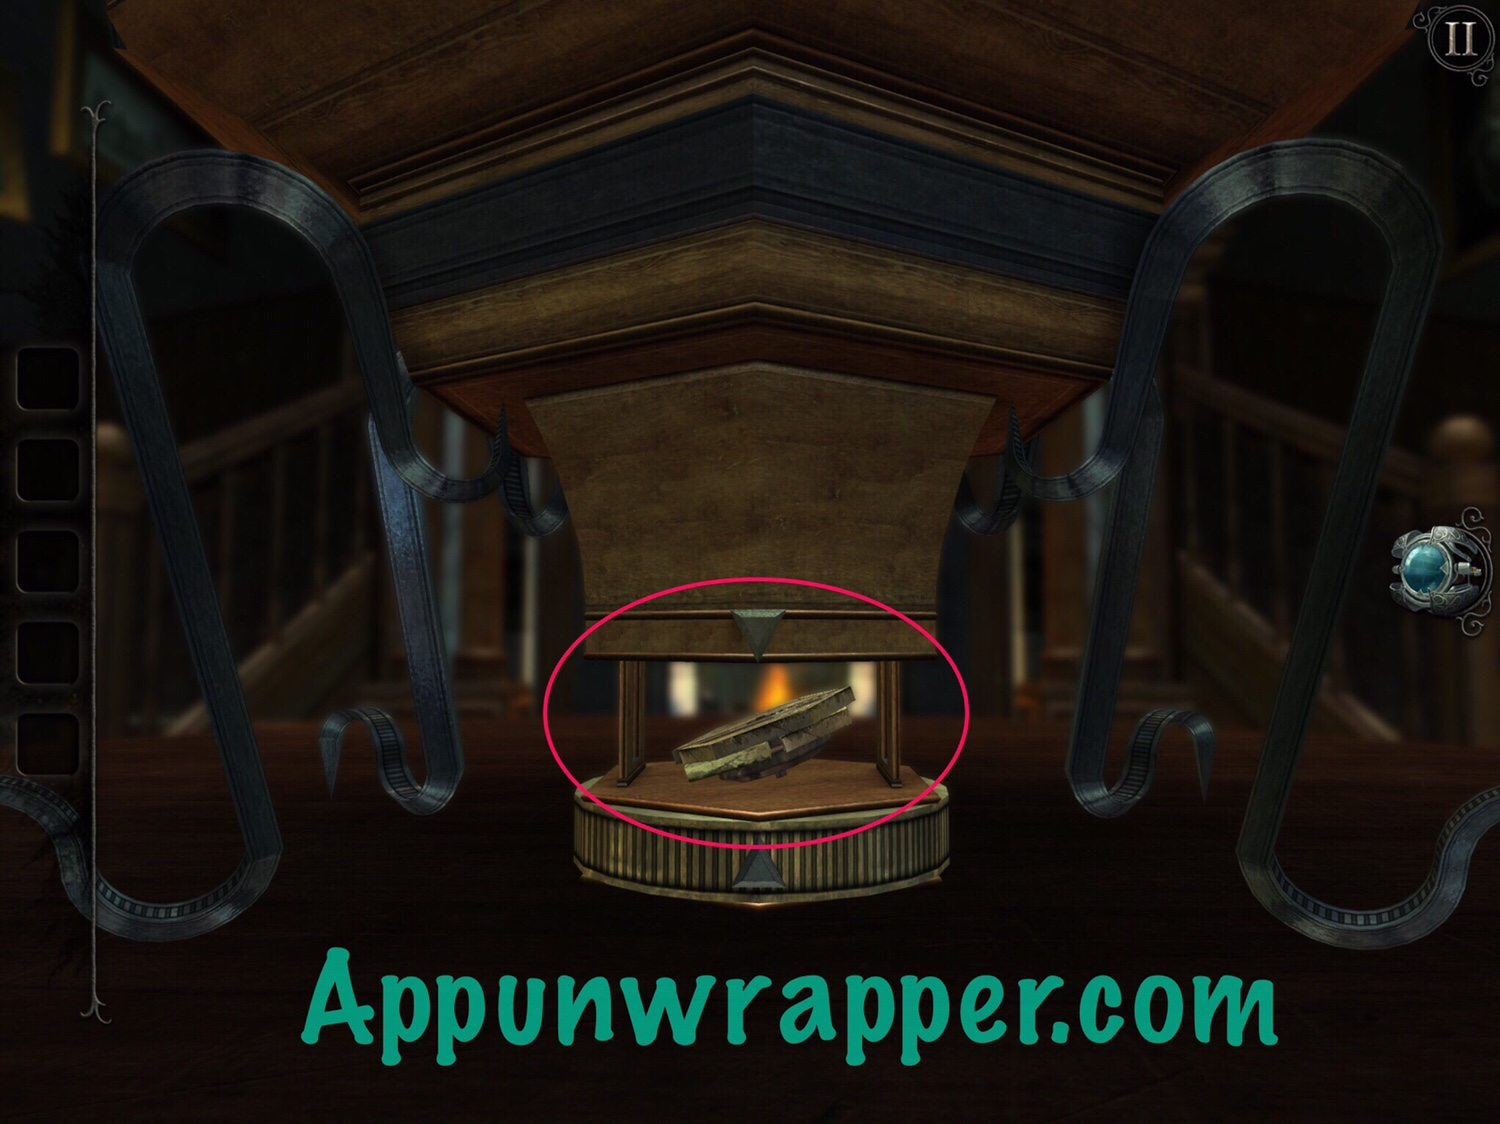 Remarkable The Room Old Sins Complete Walkthrough Guide Appunwrapper Download Free Architecture Designs Scobabritishbridgeorg